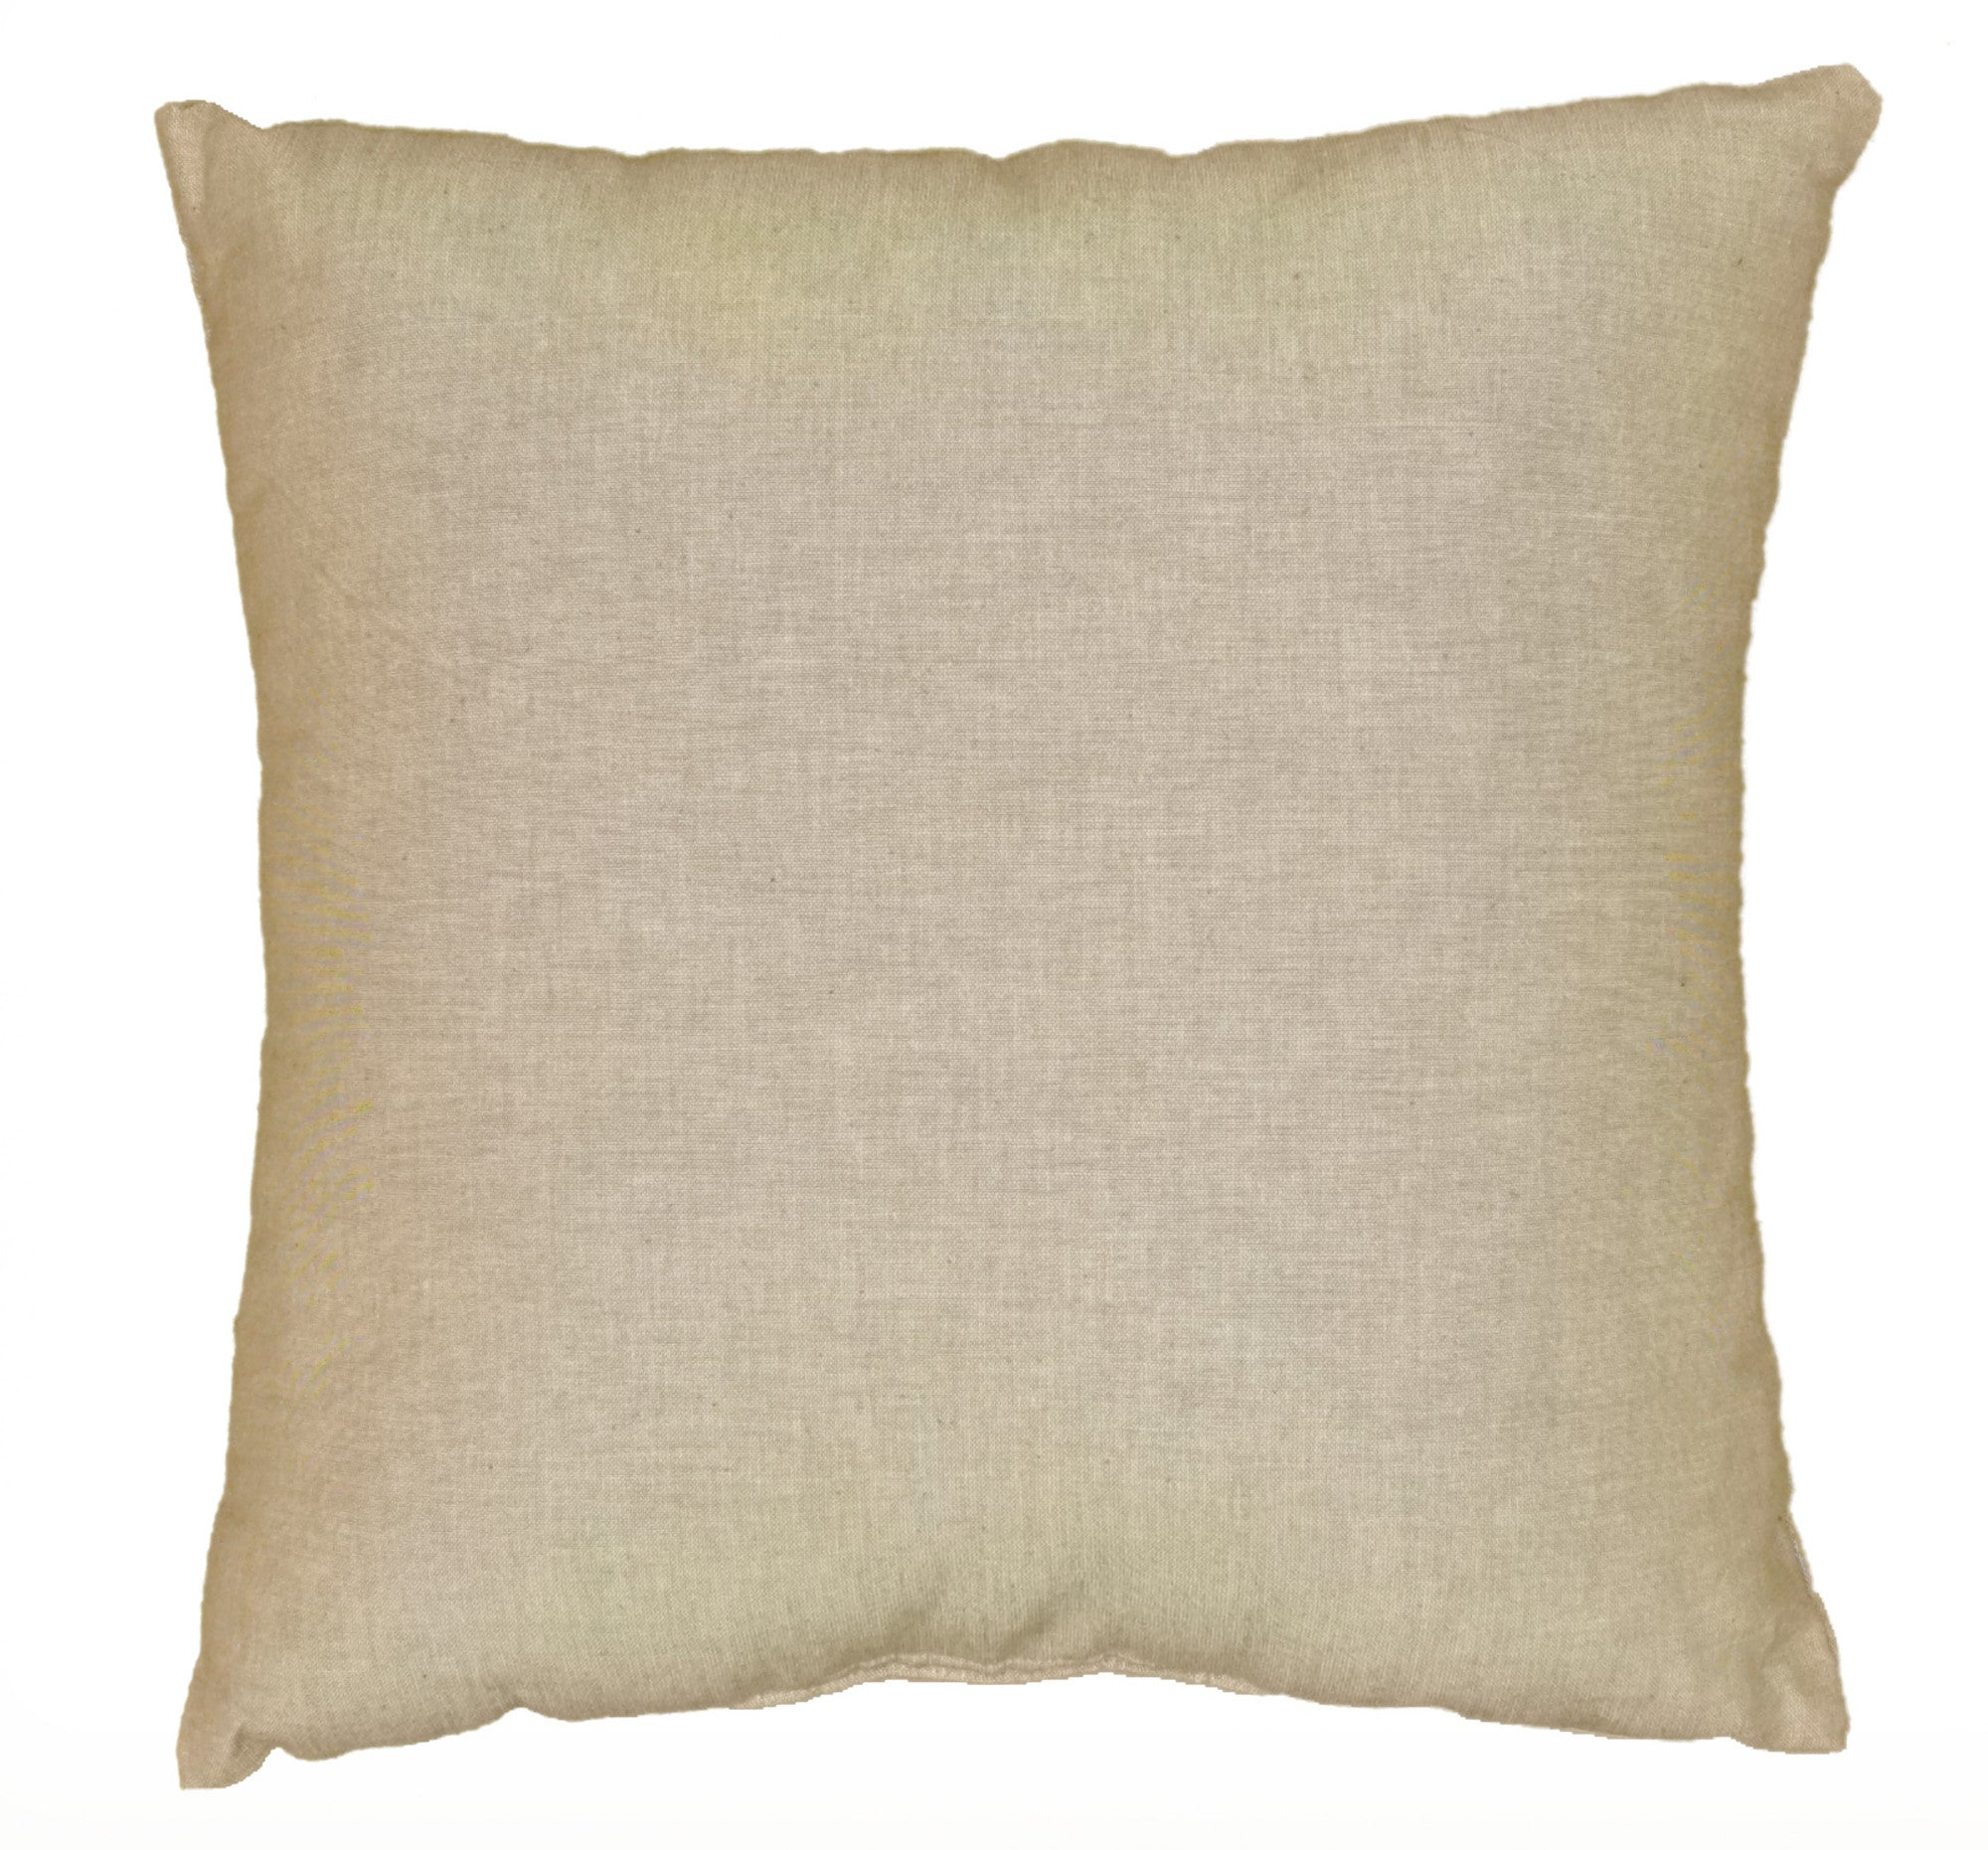 LR Resources Pillows 07235 Natural